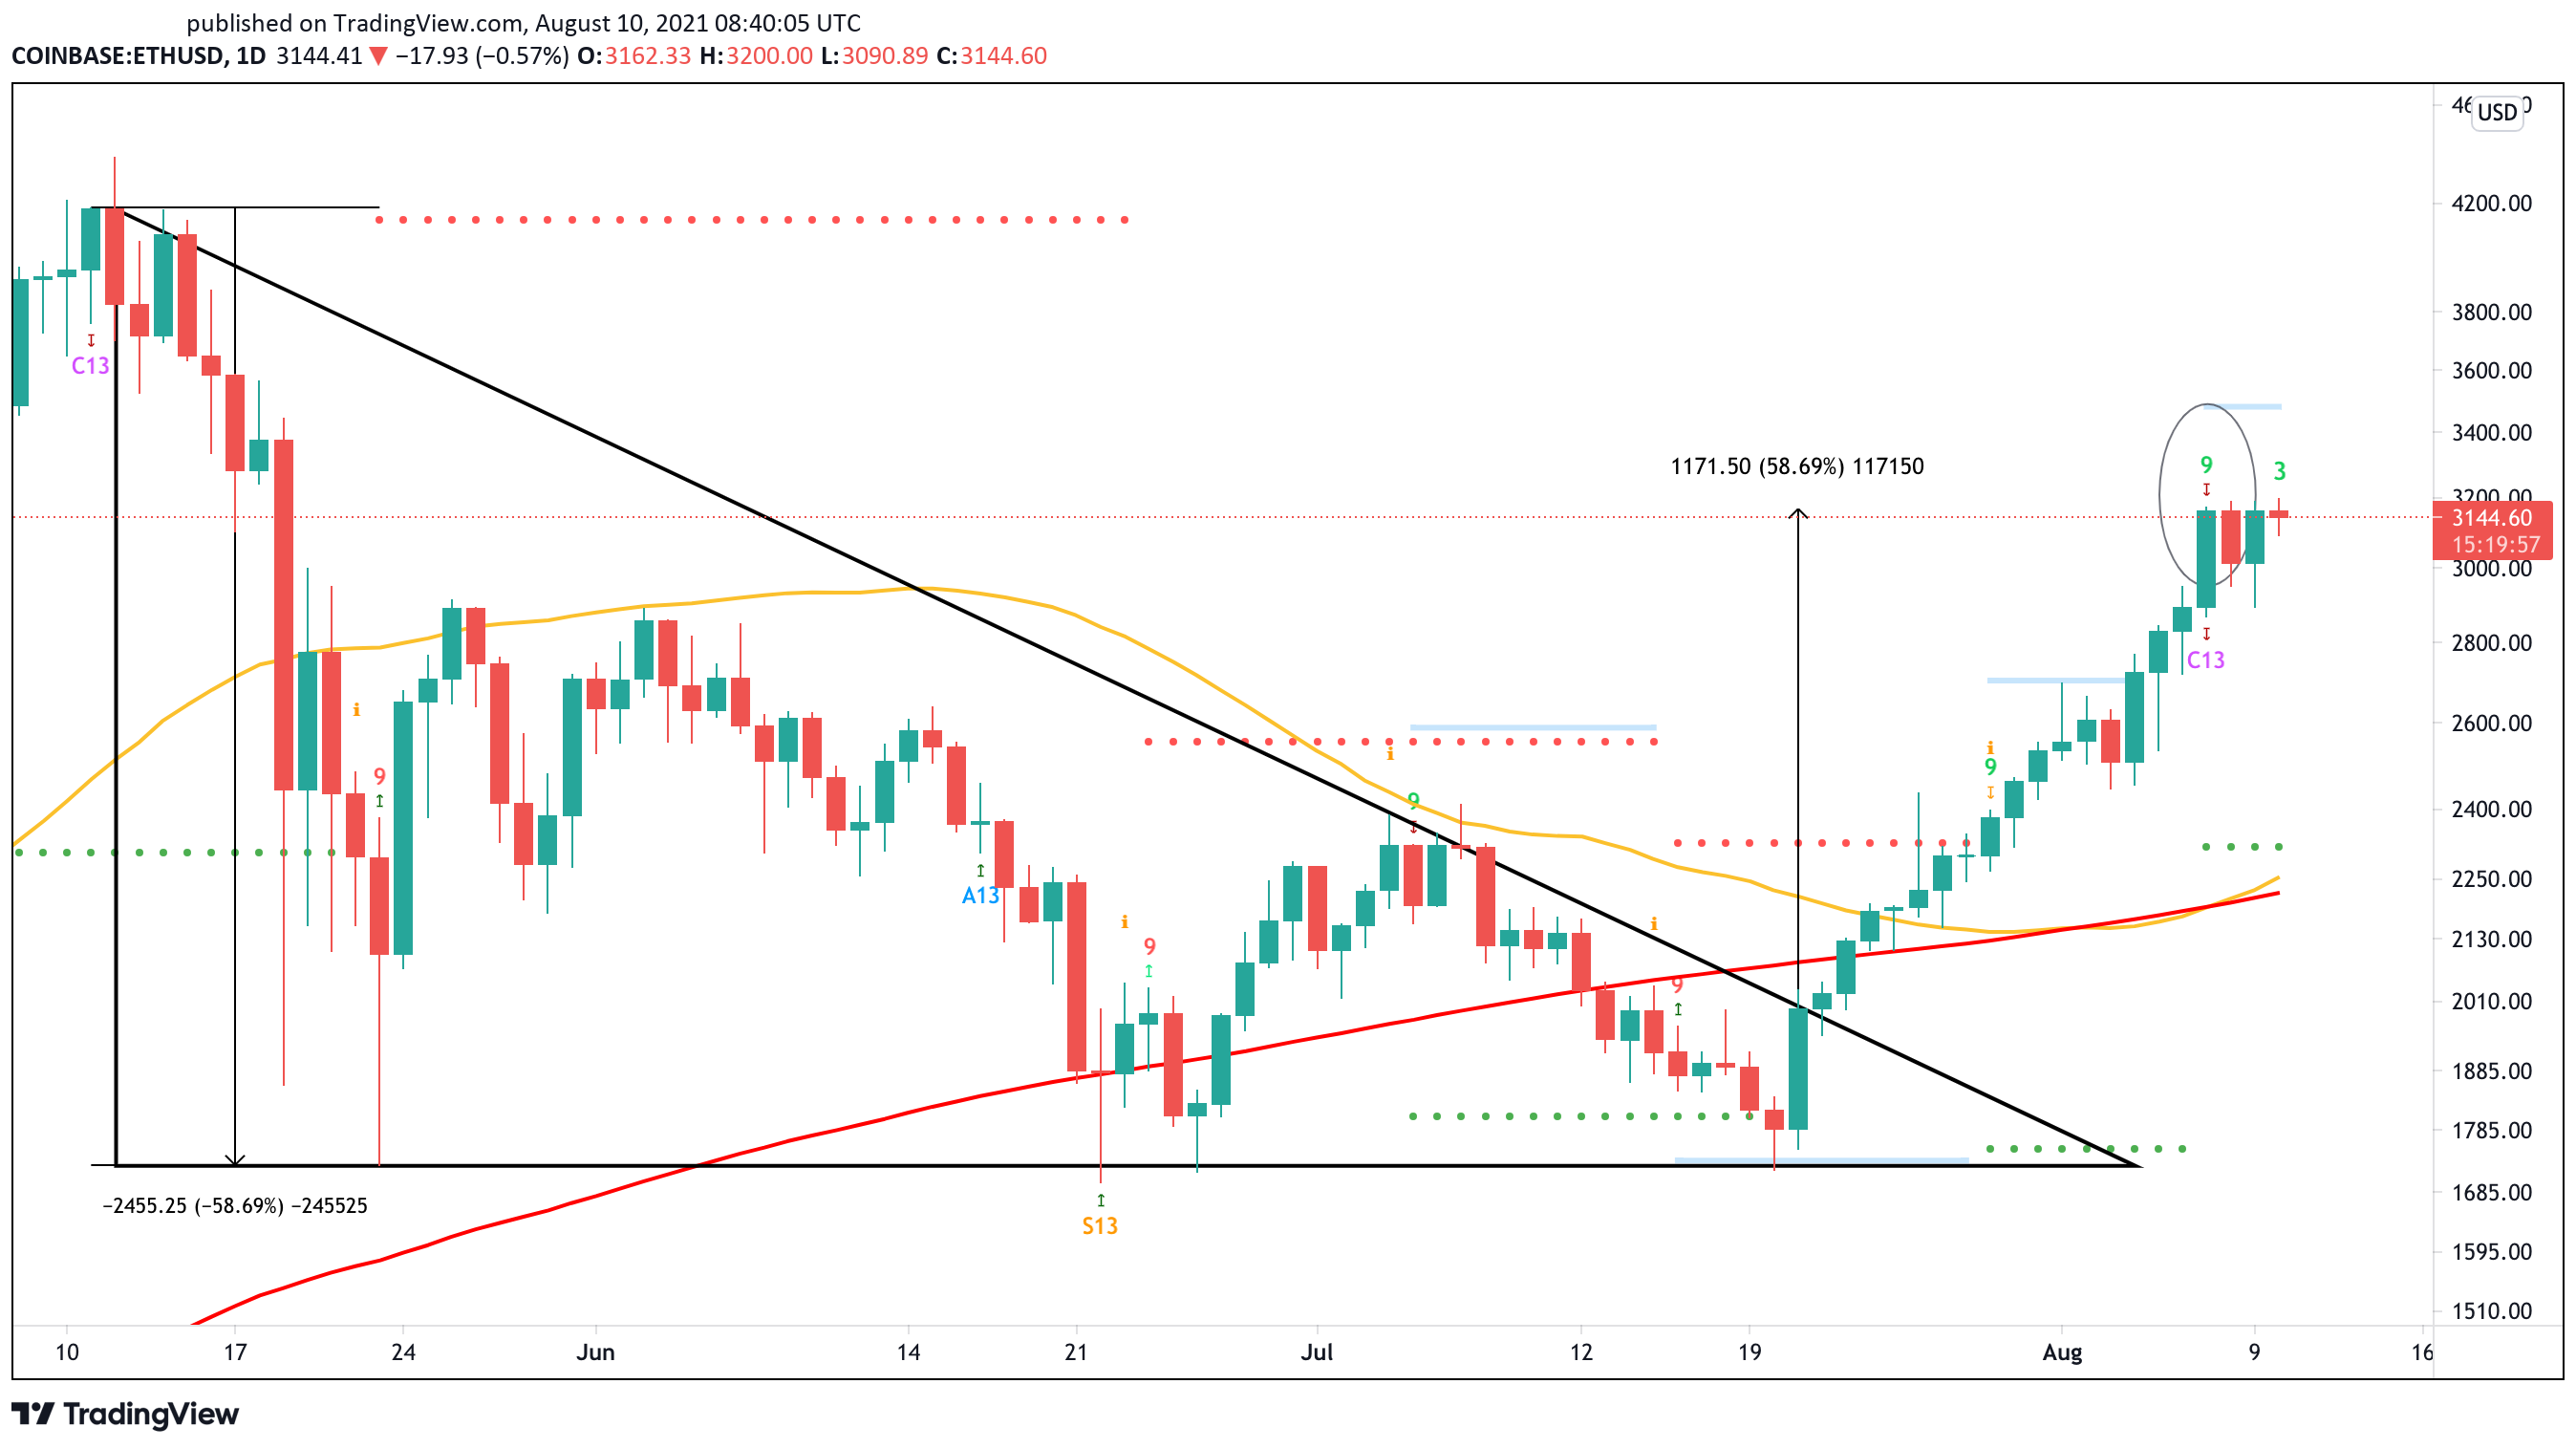 Ethereum Exhibits Red Flags Following 60% Rally